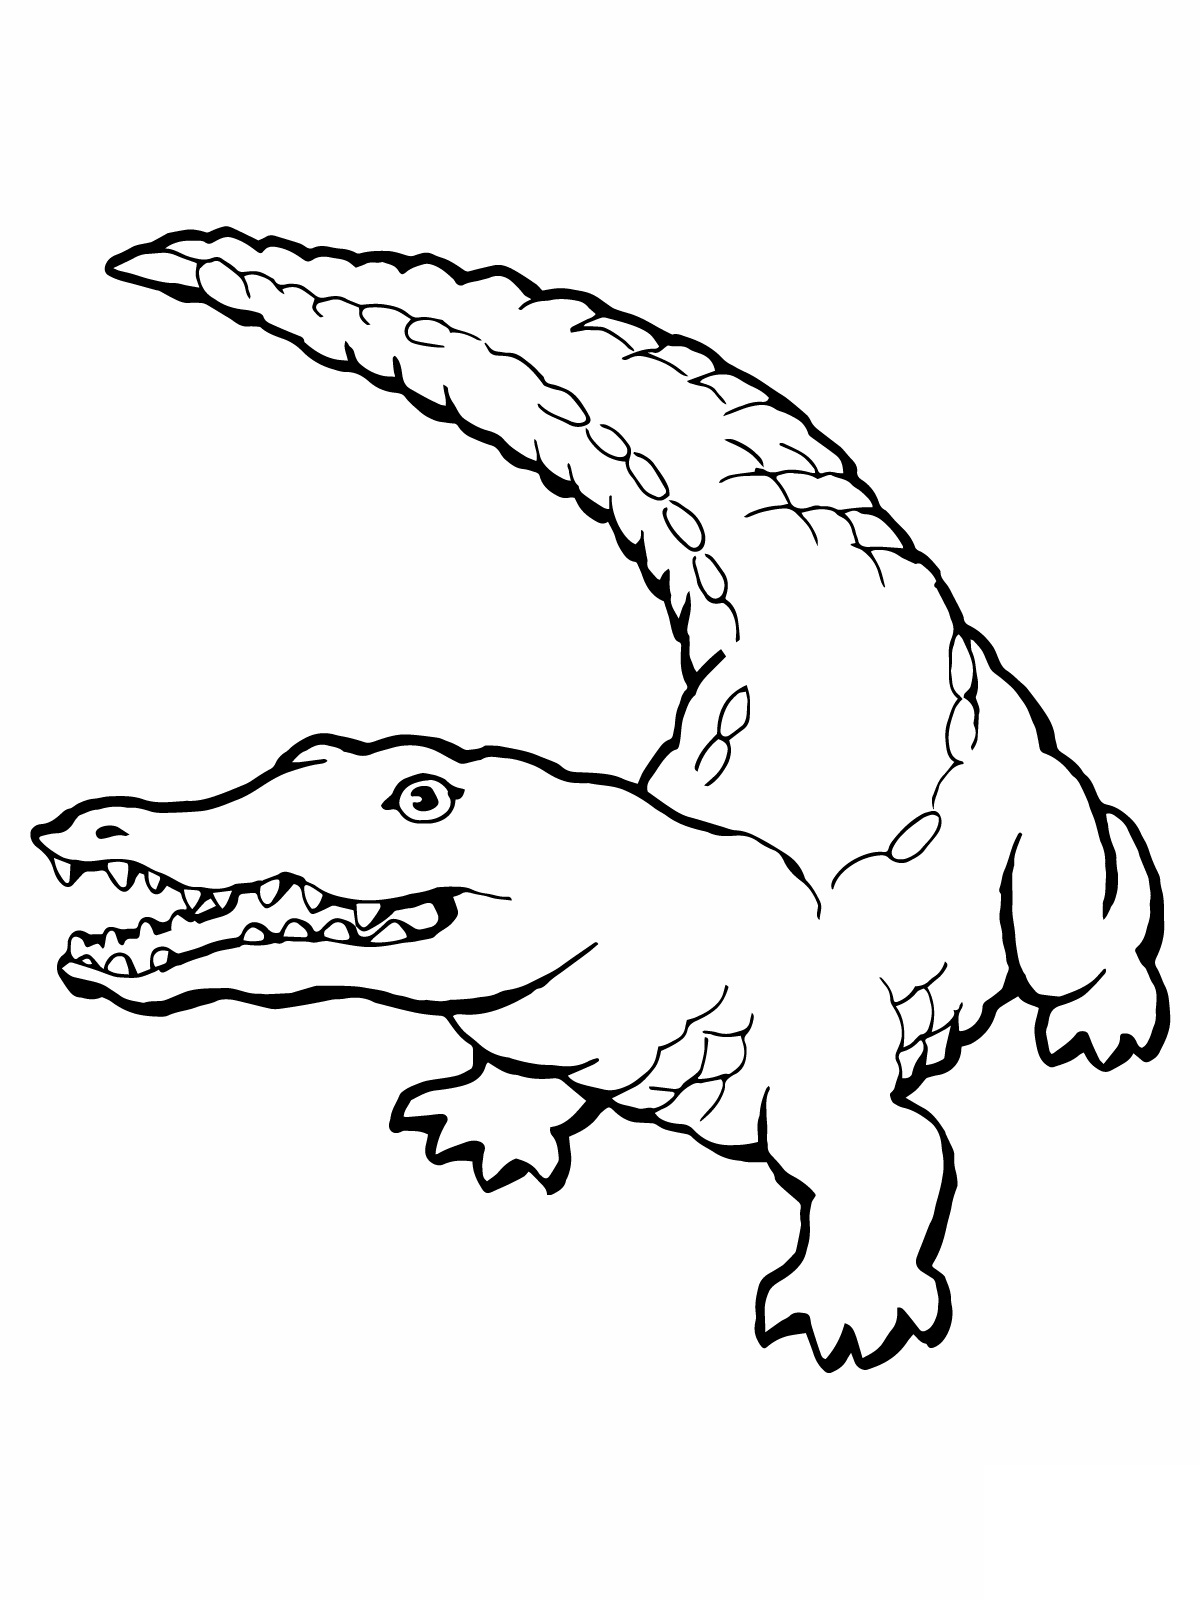 alligator coloring pages free - photo#38